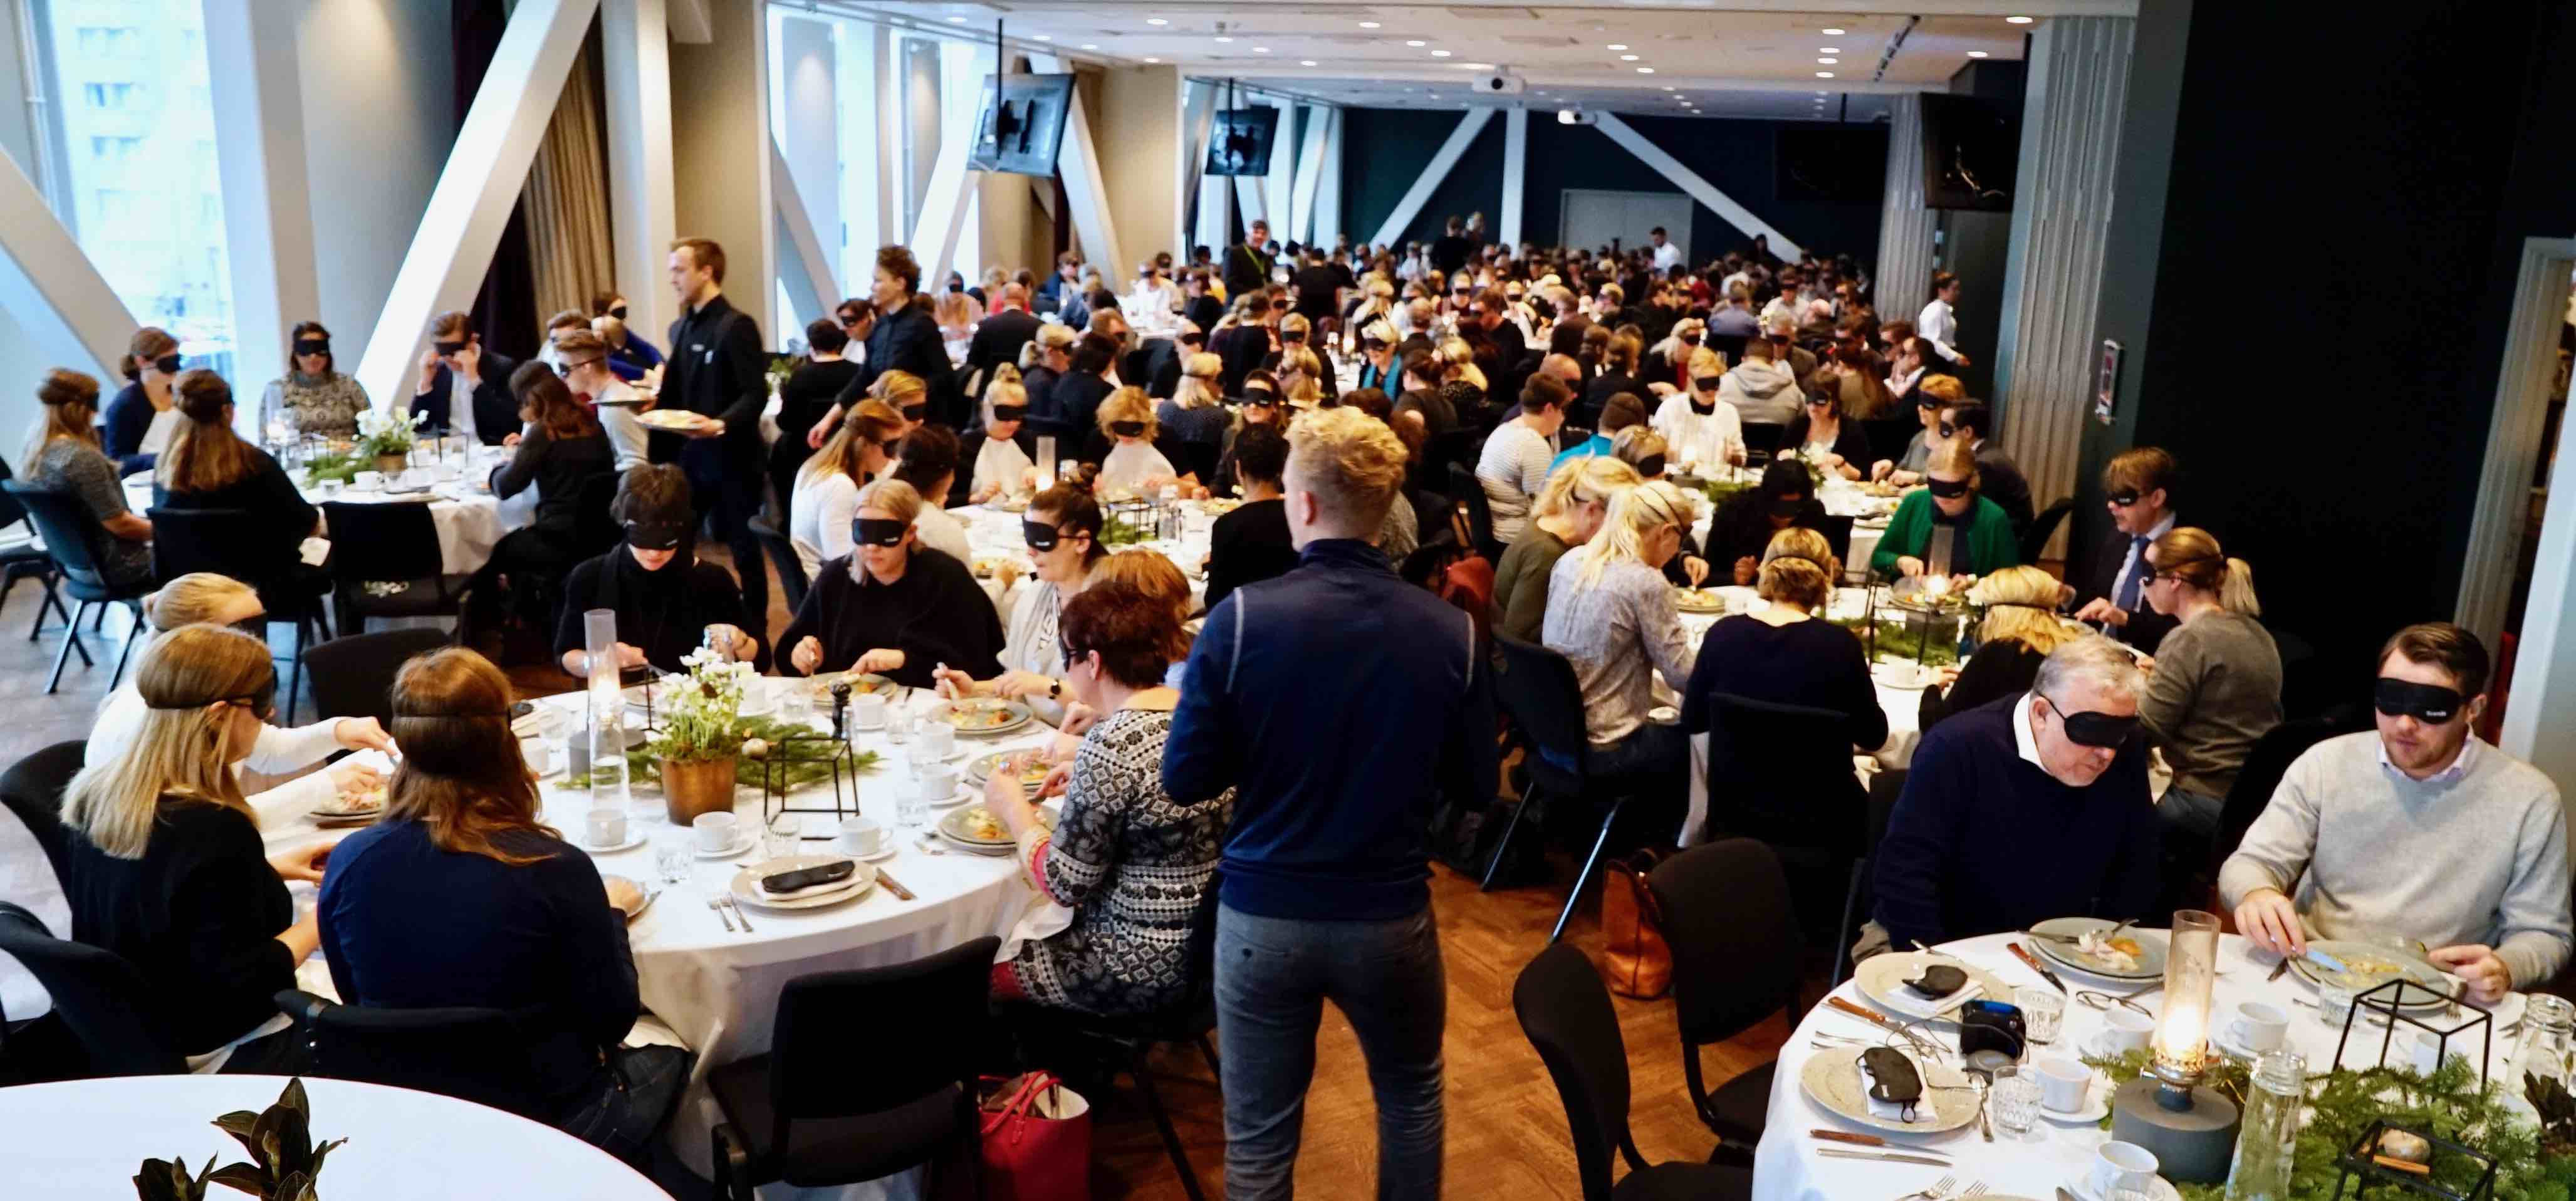 Photo of Blind lunch for 230 guests at the Scandic Continental hotel, Stockholm